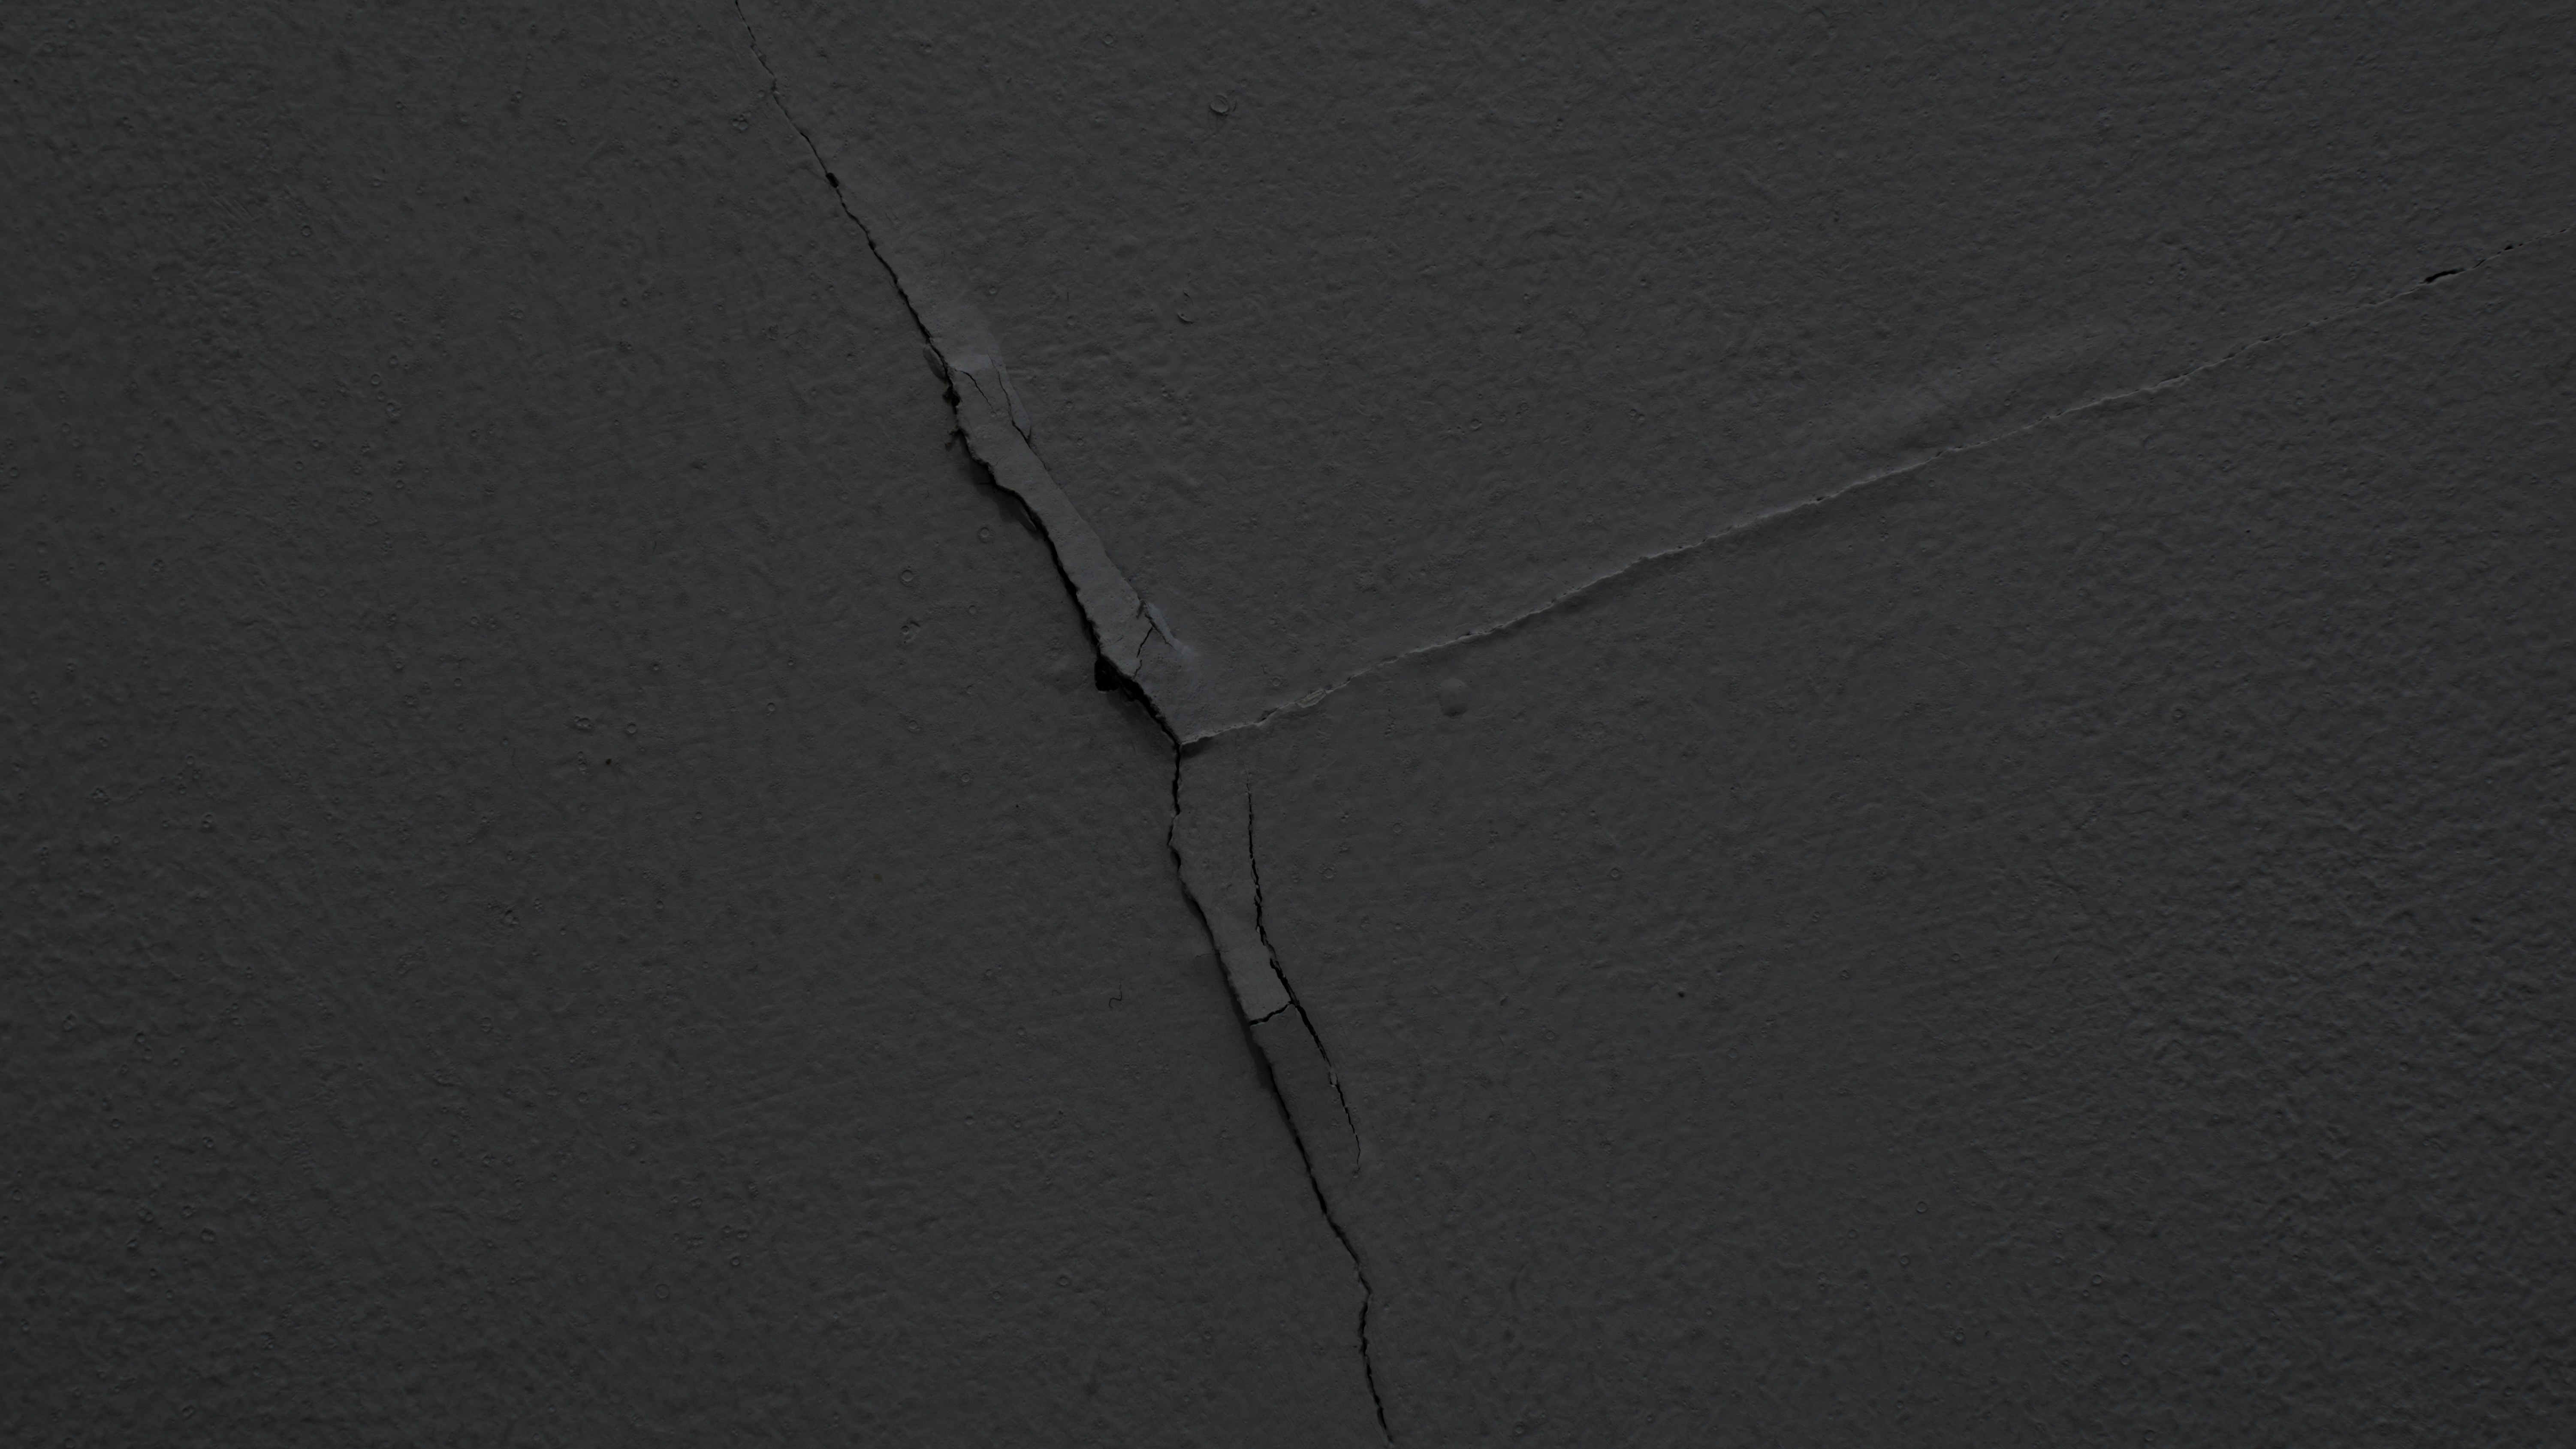 Black wall with a crack running through it